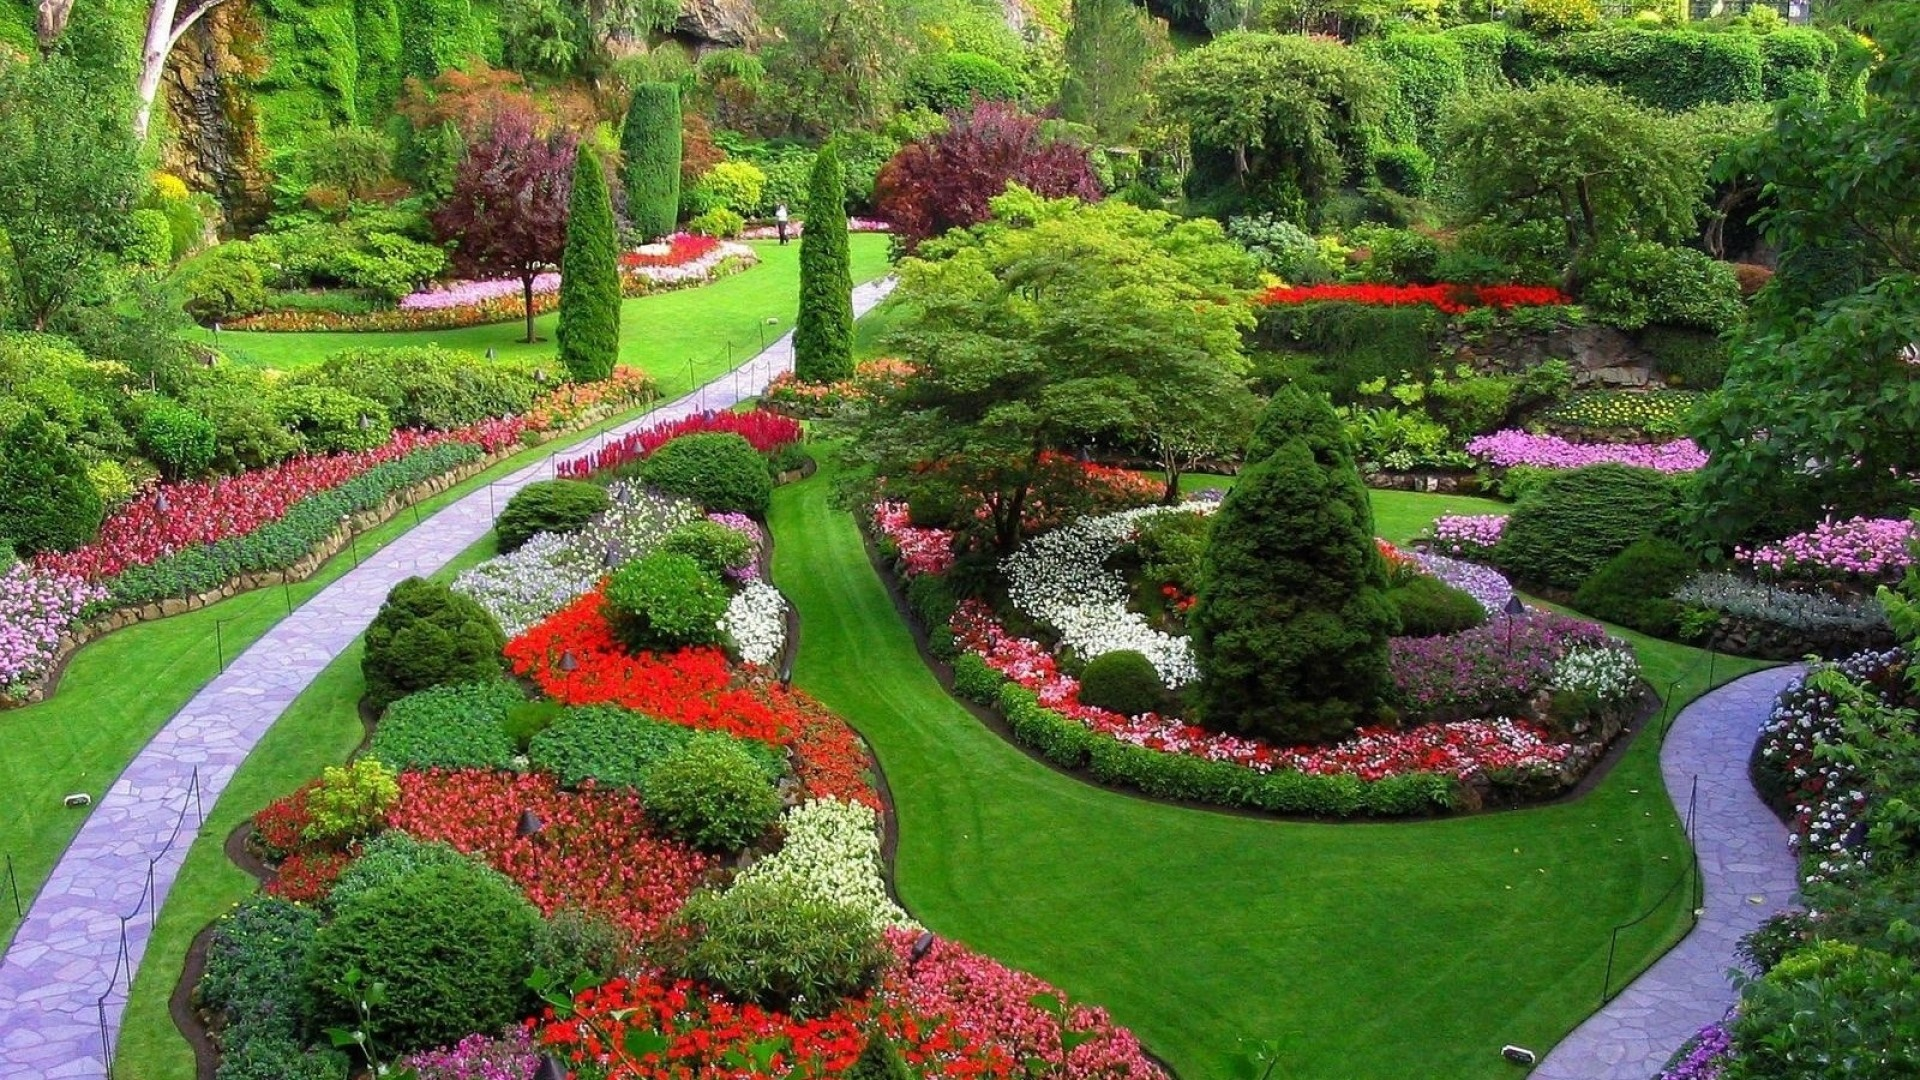 Colorful Flowers and Trees Garden Wallpaper